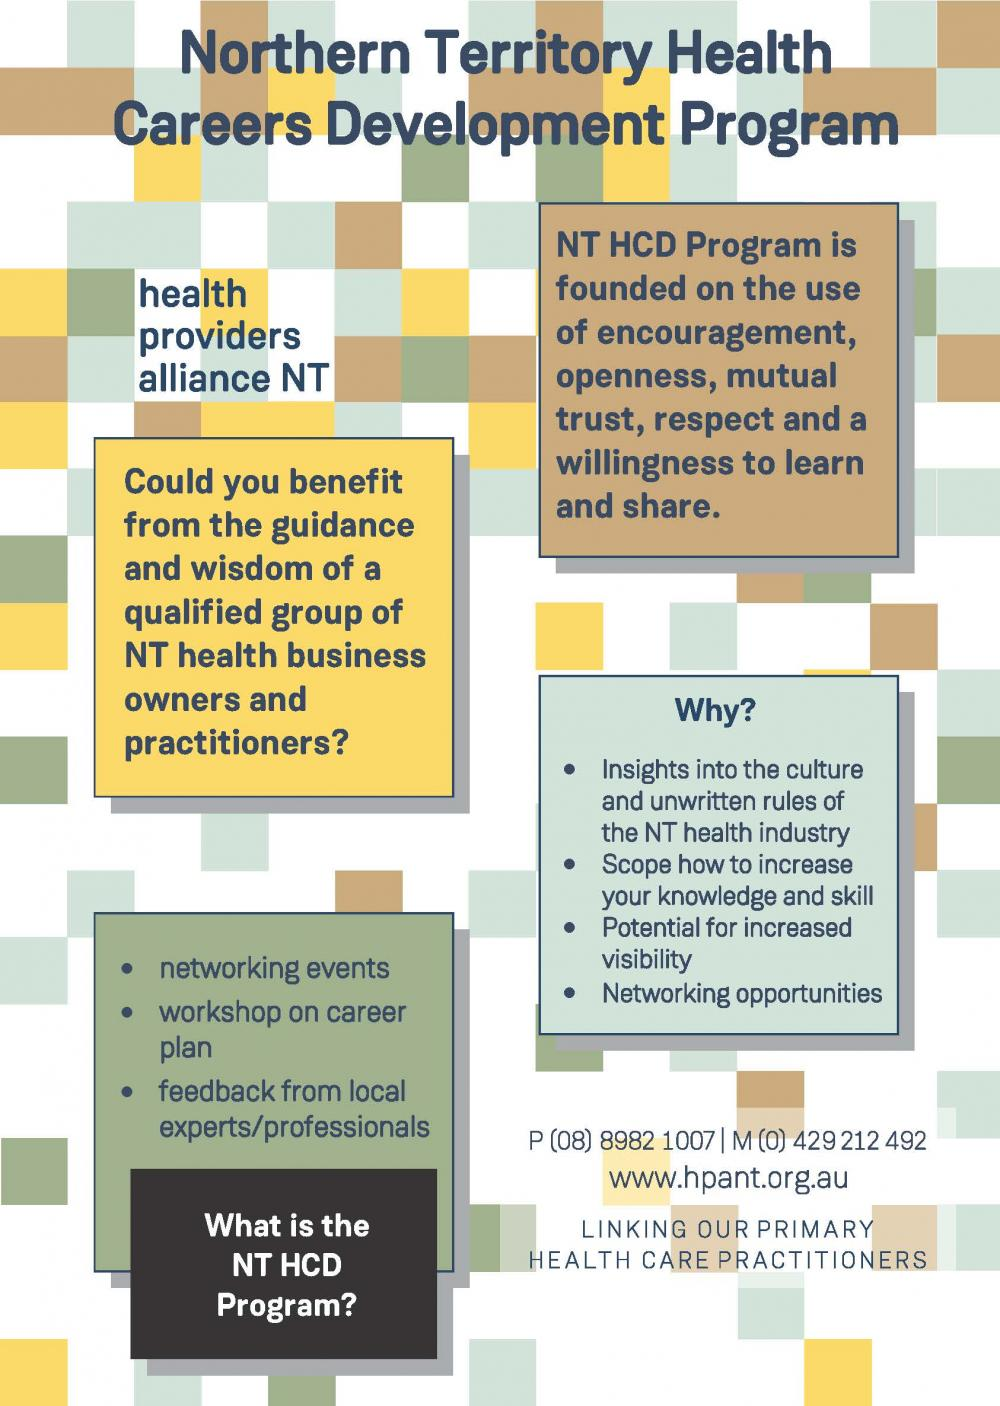 Could you benefit from the guidance and wisdom of a qualified group of NT health business owners and practitioners?